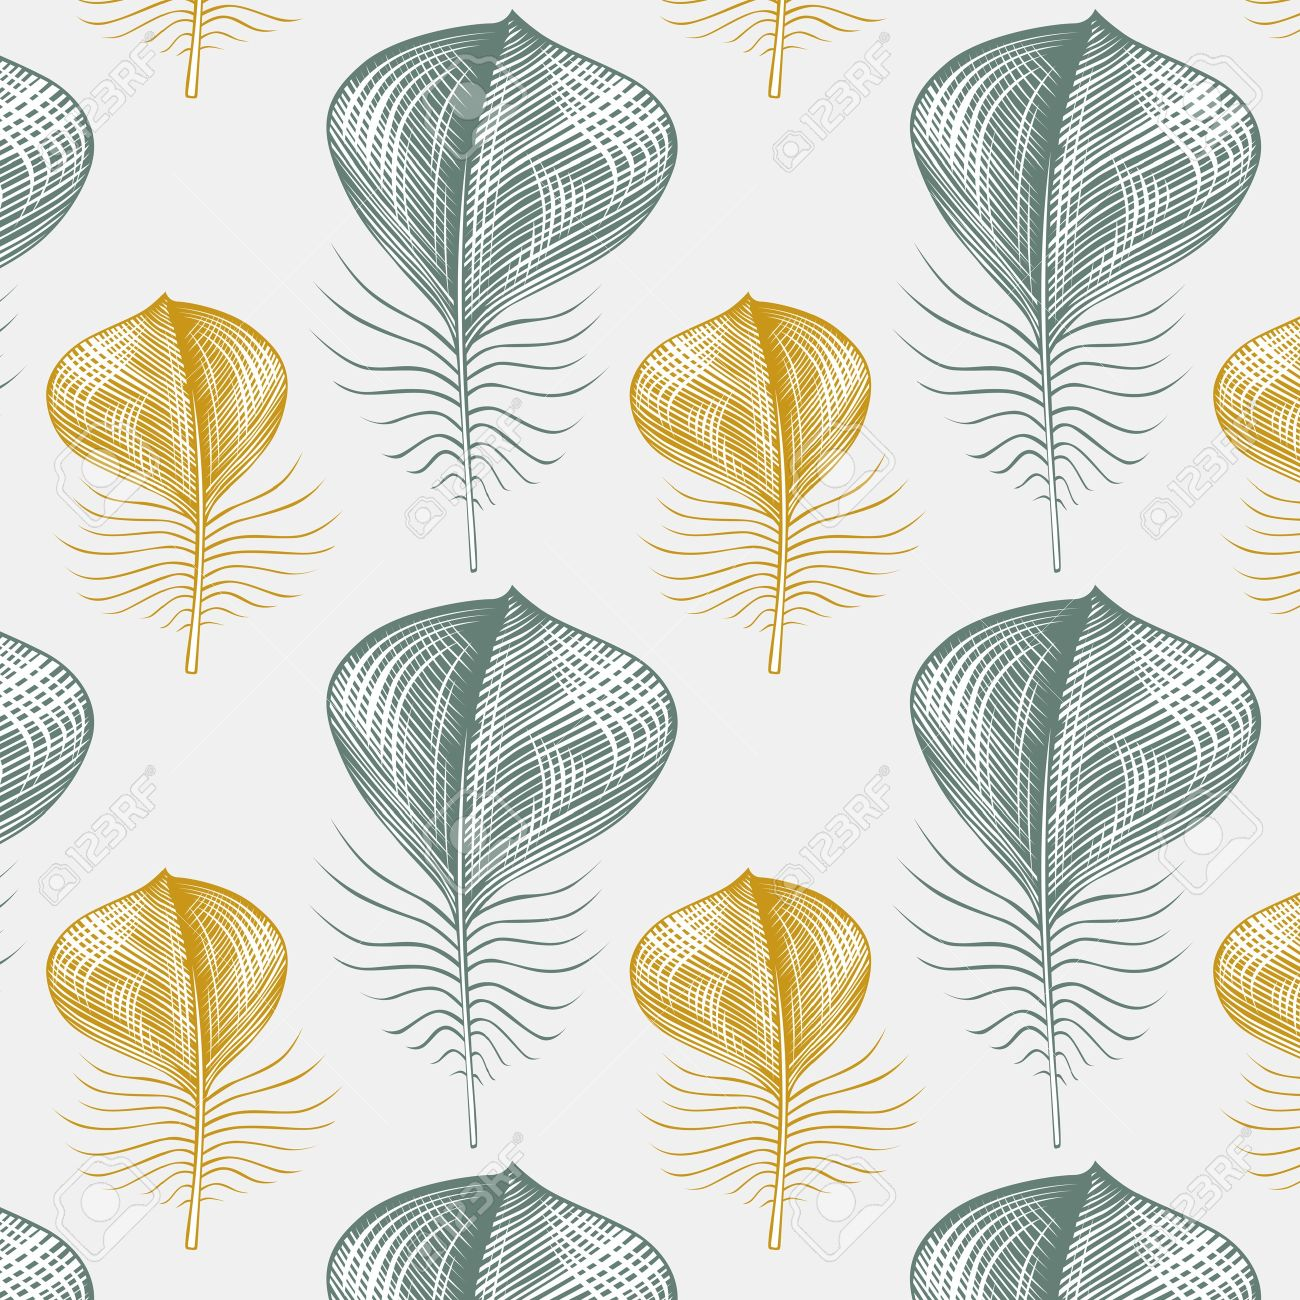 feather pattern background - 9501330